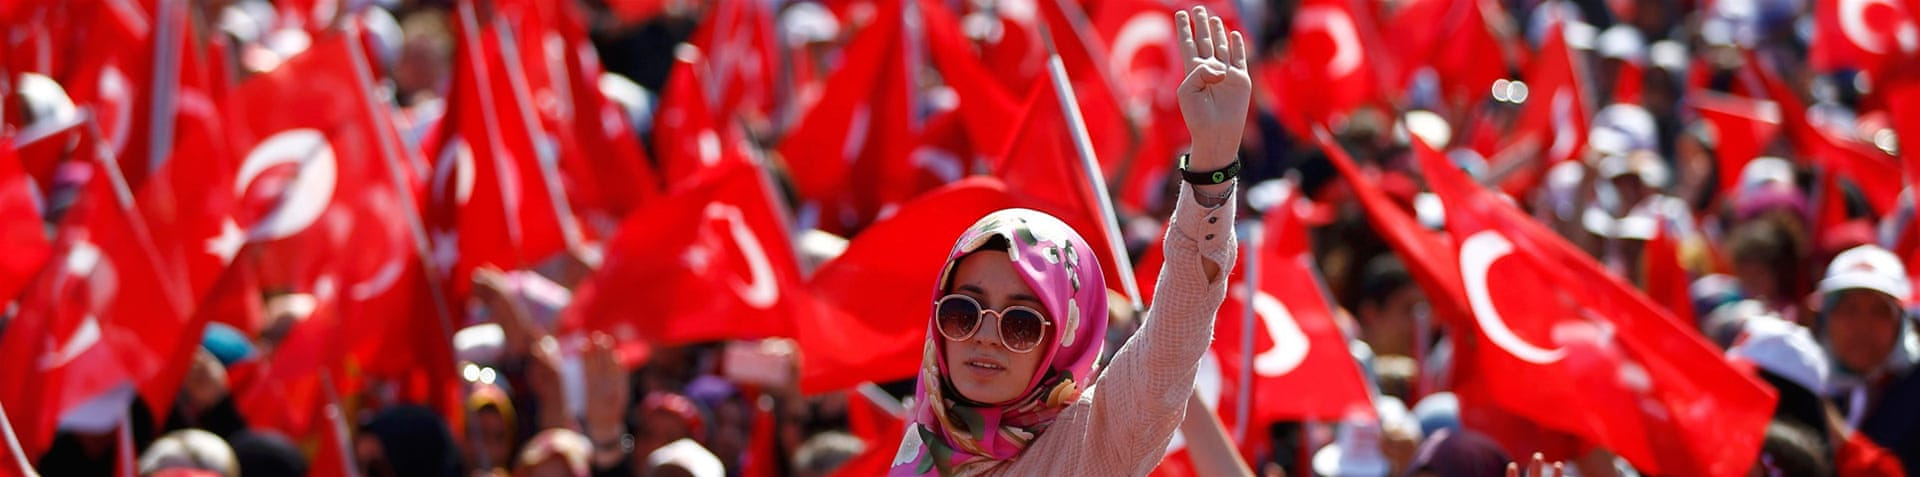 Aside from Istanbul, similar rallies were simultaneously held across the country on Sunday [Reuters]